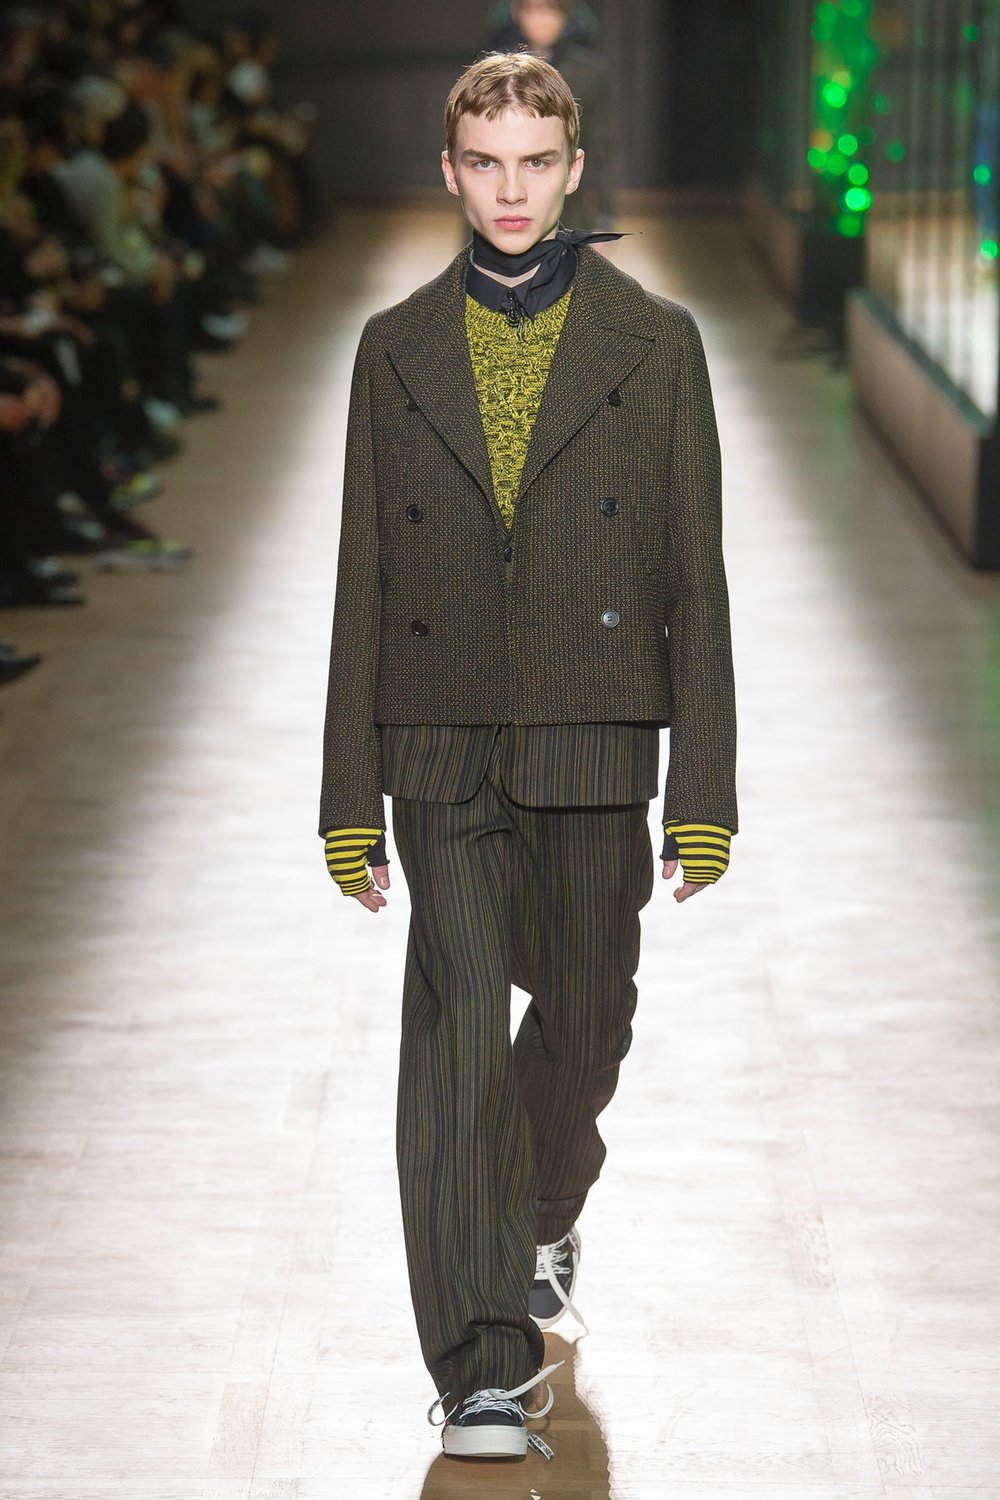 dior_homme_look_38_menswear_autumn_2018.jpeg